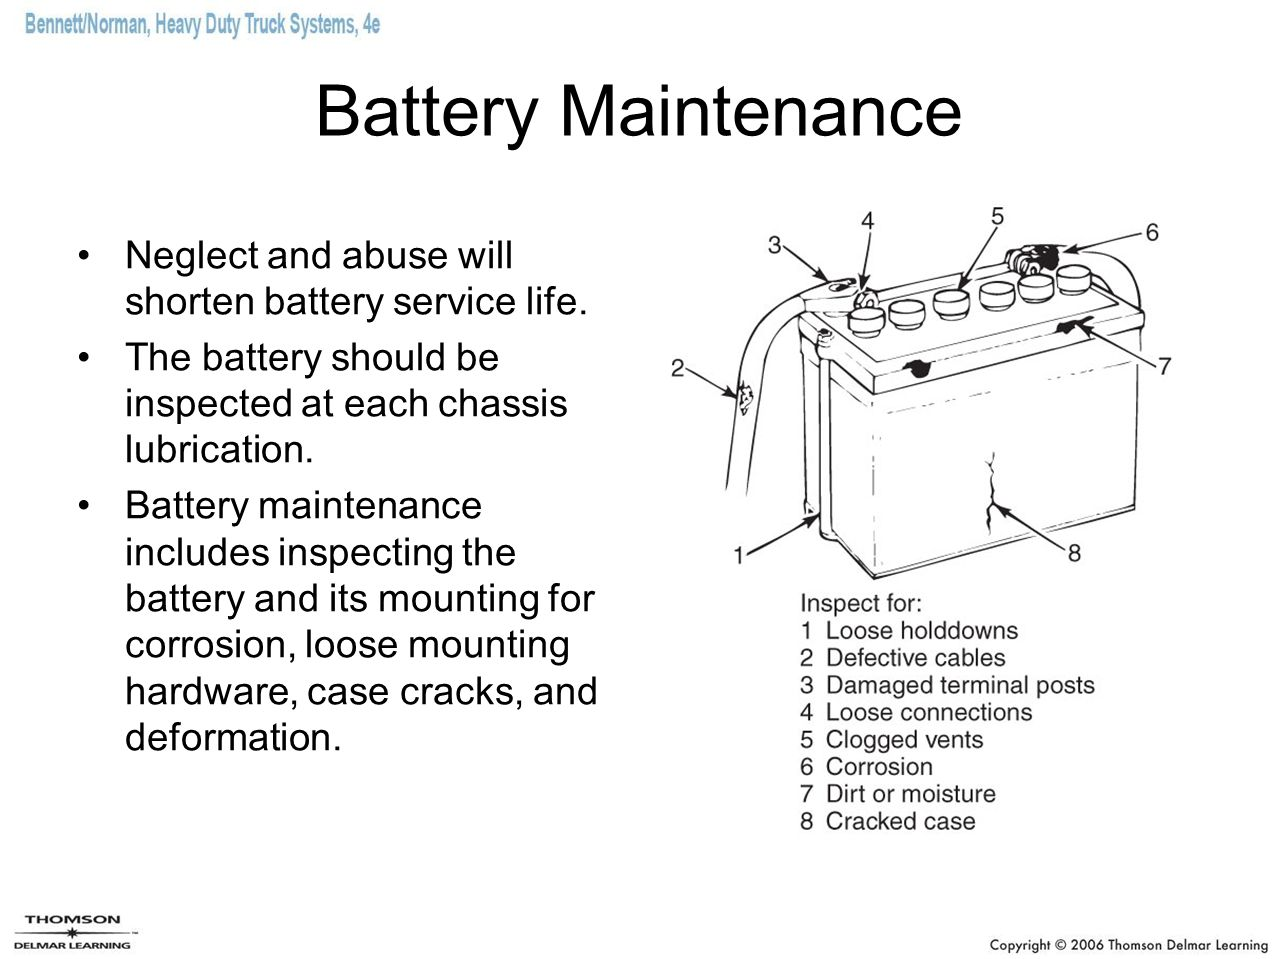 Battery Maintenance Neglect and abuse will shorten battery service life. The battery should be inspected at each chassis lubrication.